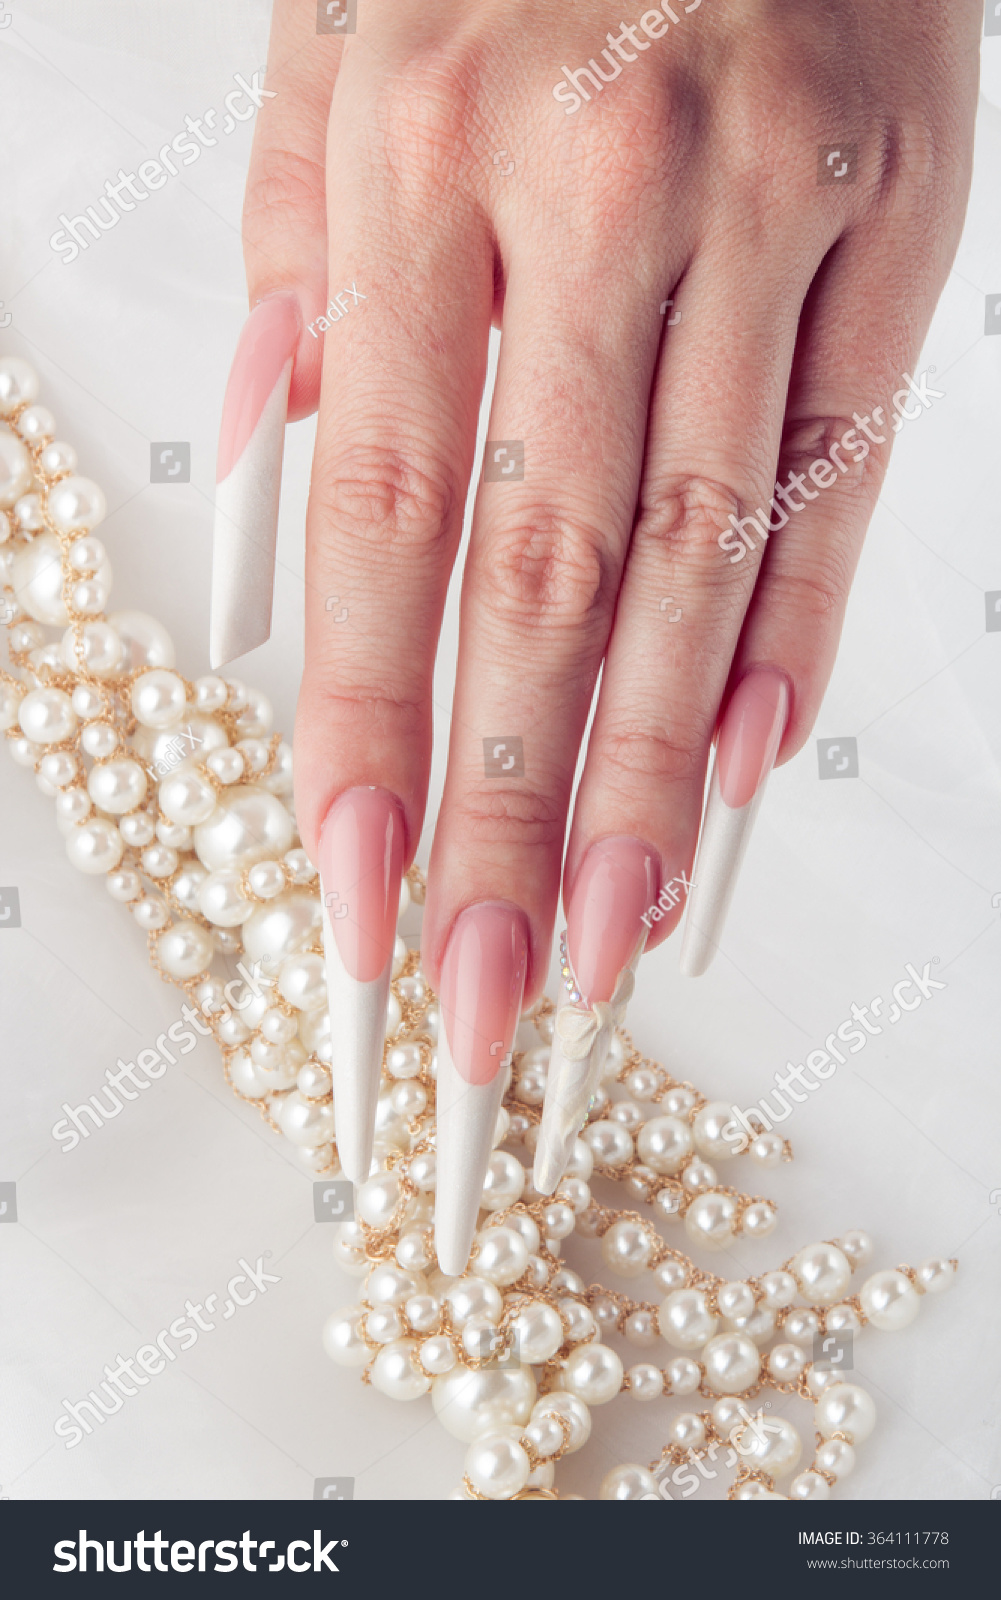 Painted Simple Extreme Long Nails Hands Stock Photo 364111778 ...